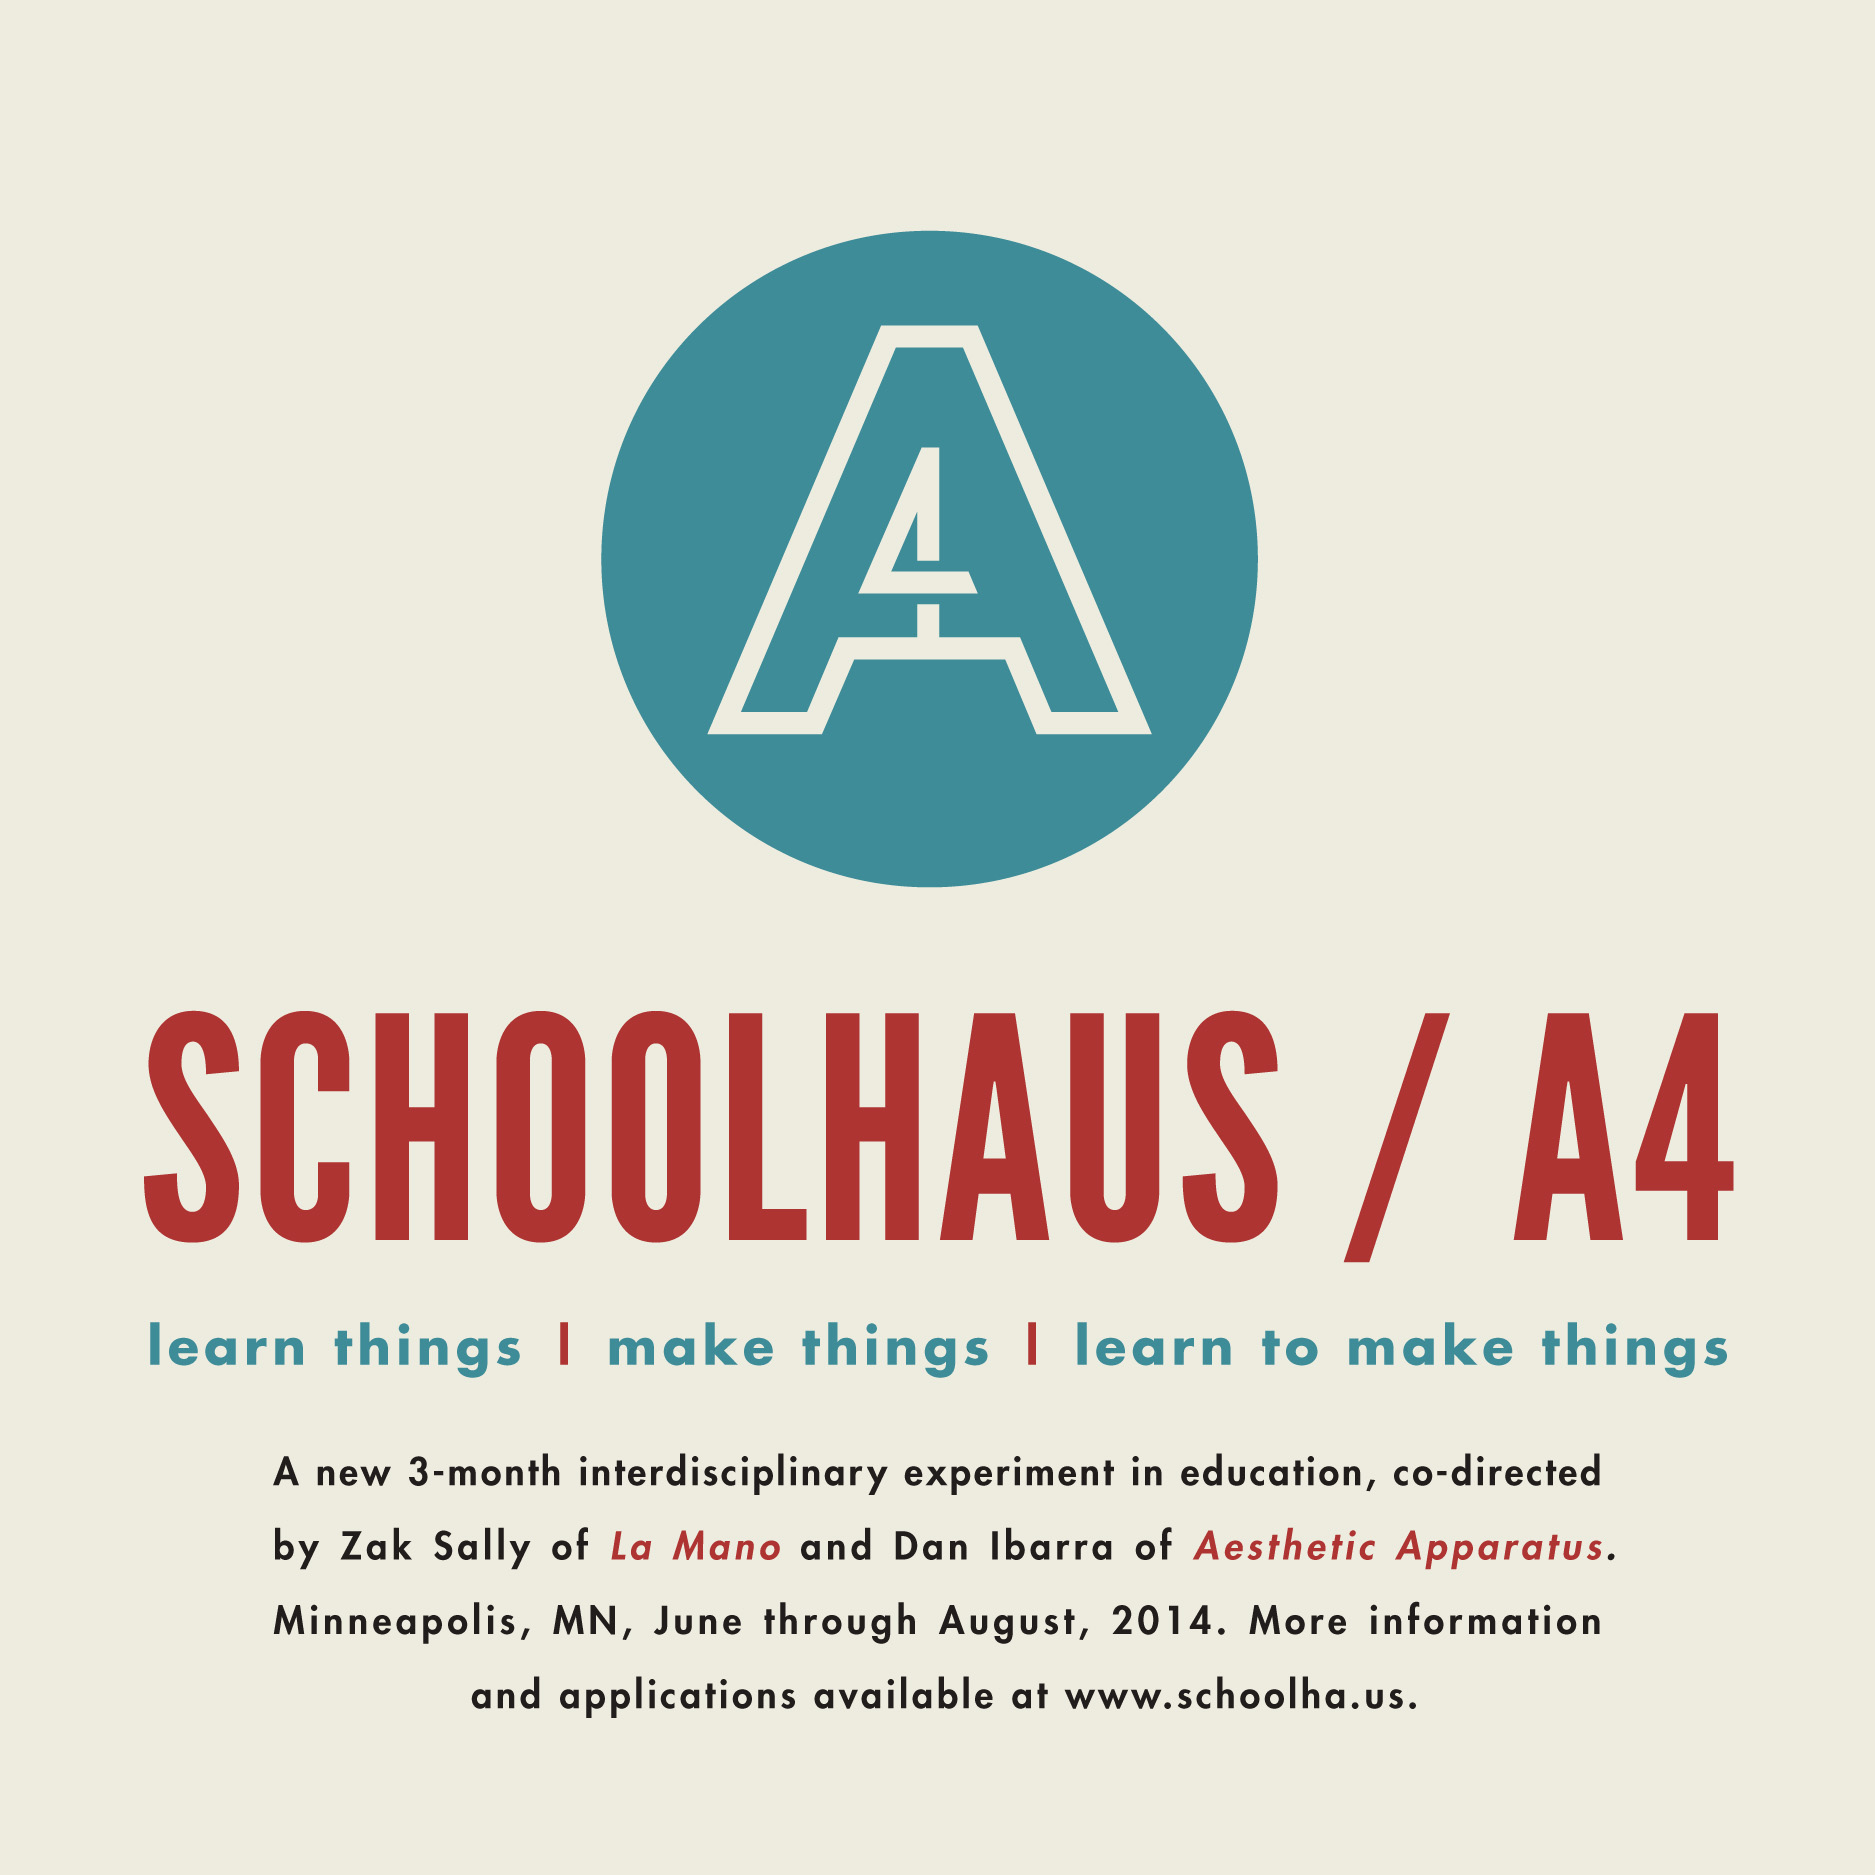 Schoolhaus-A4_promo-LG